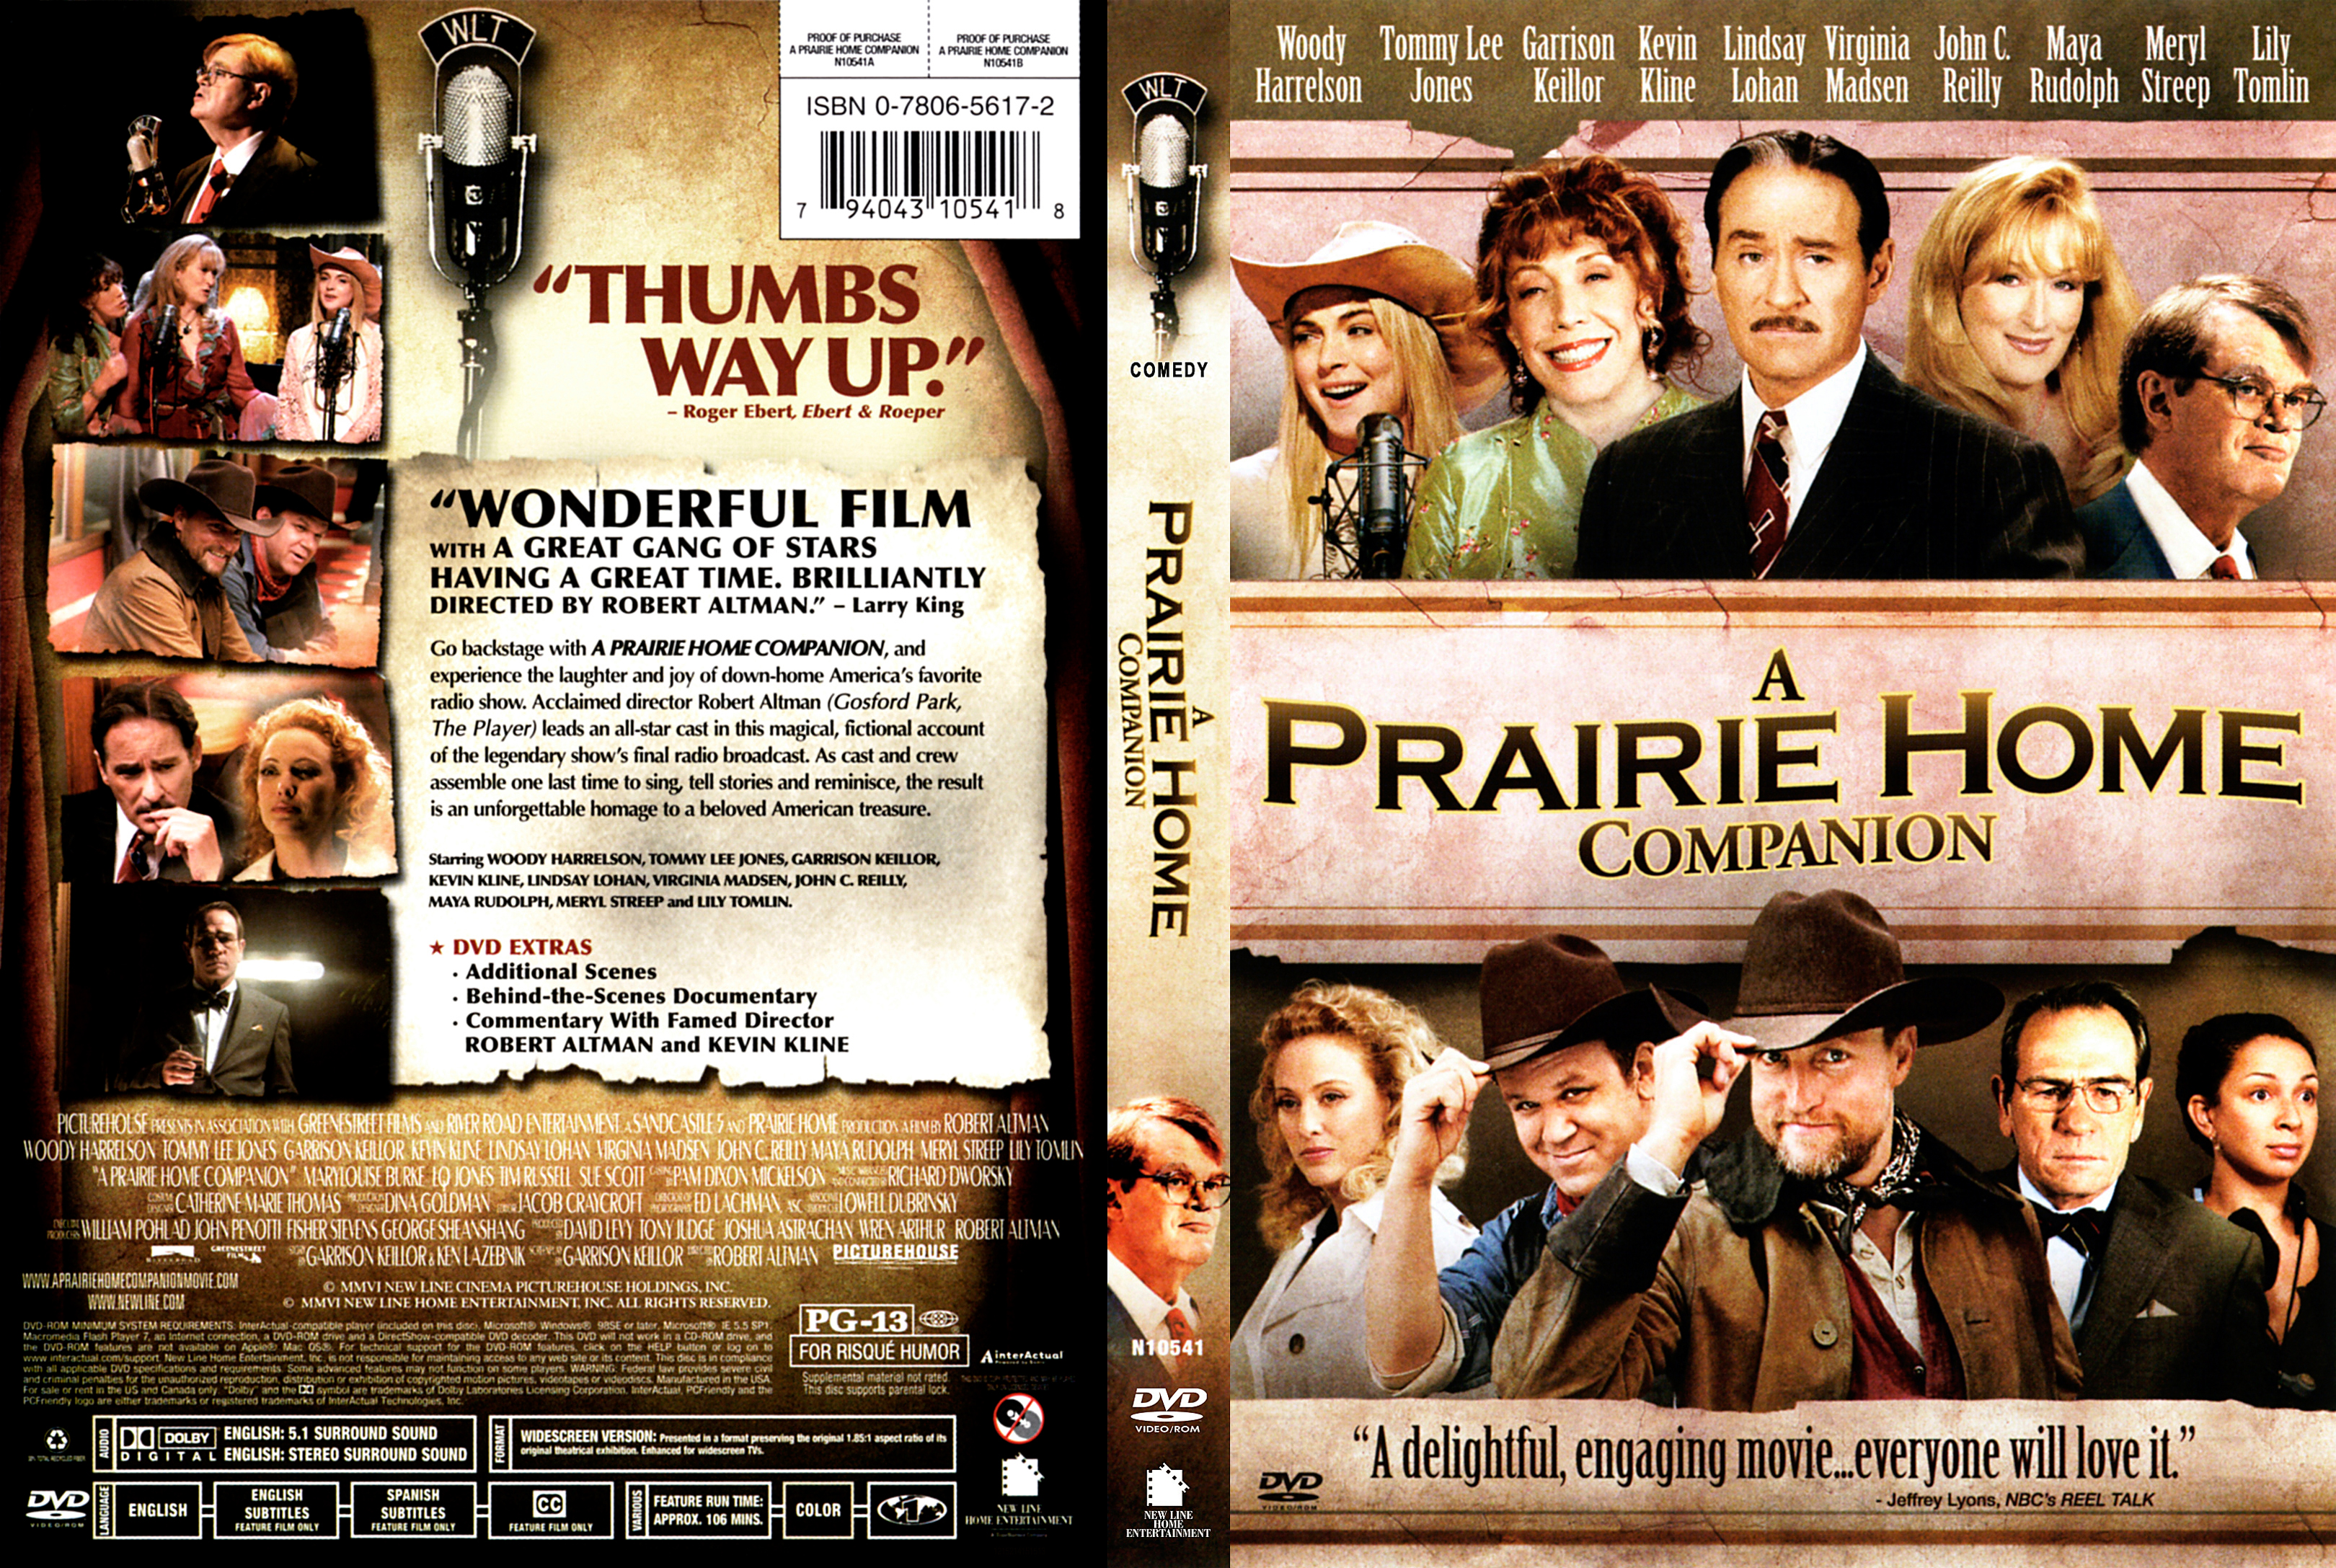 A Prairie Home Companion Dvd Covers Cover Century Over